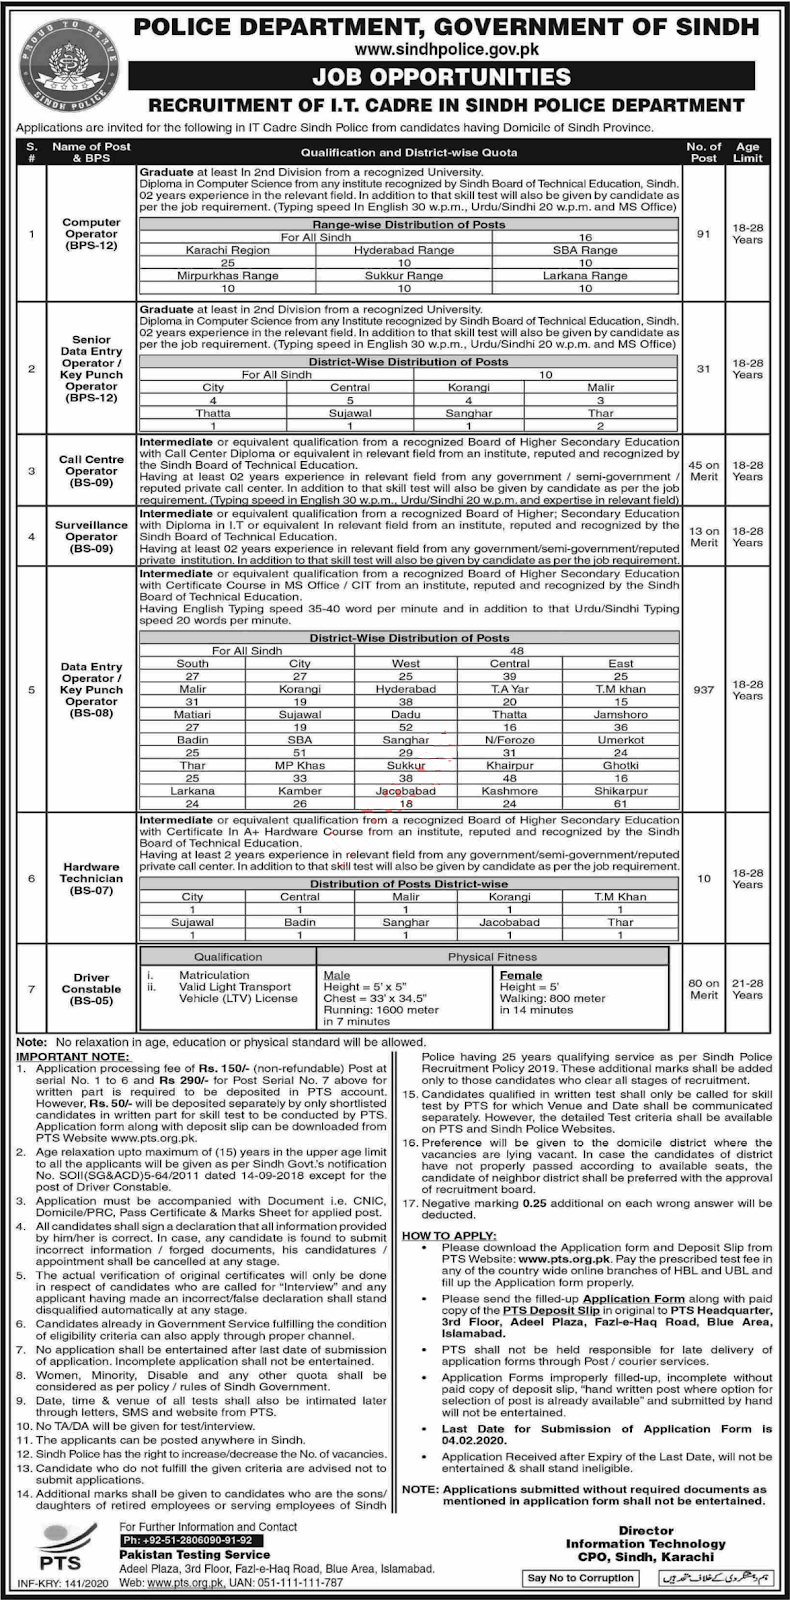 Jobs in Police Department Govt of Sindh 2020 Advertisement